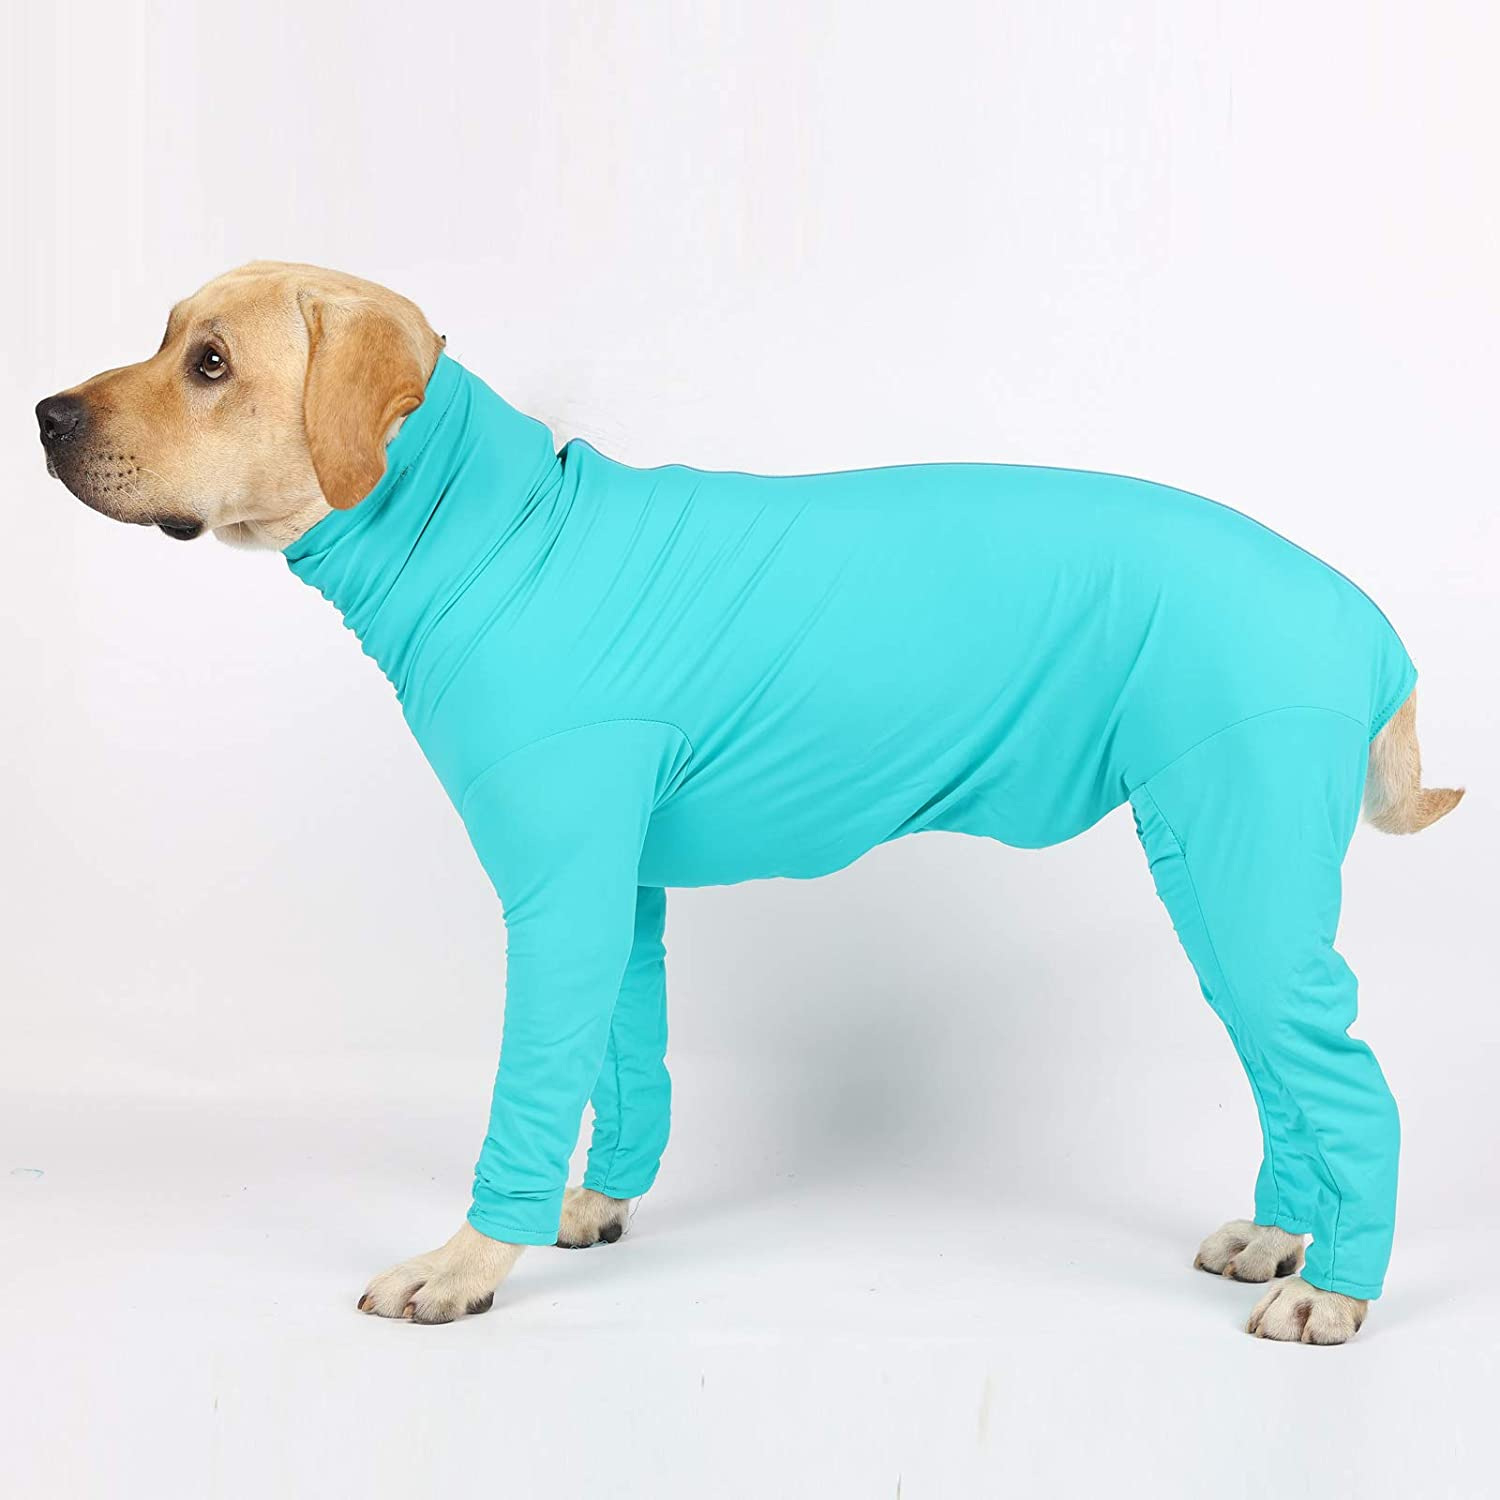 Surgery Recovery Body Jumpsuit Glorisun Original Dog Onesie Anxiety Calming Shirt Car Long-Sleeved 4 Legs Dog Clothing for Home Travel